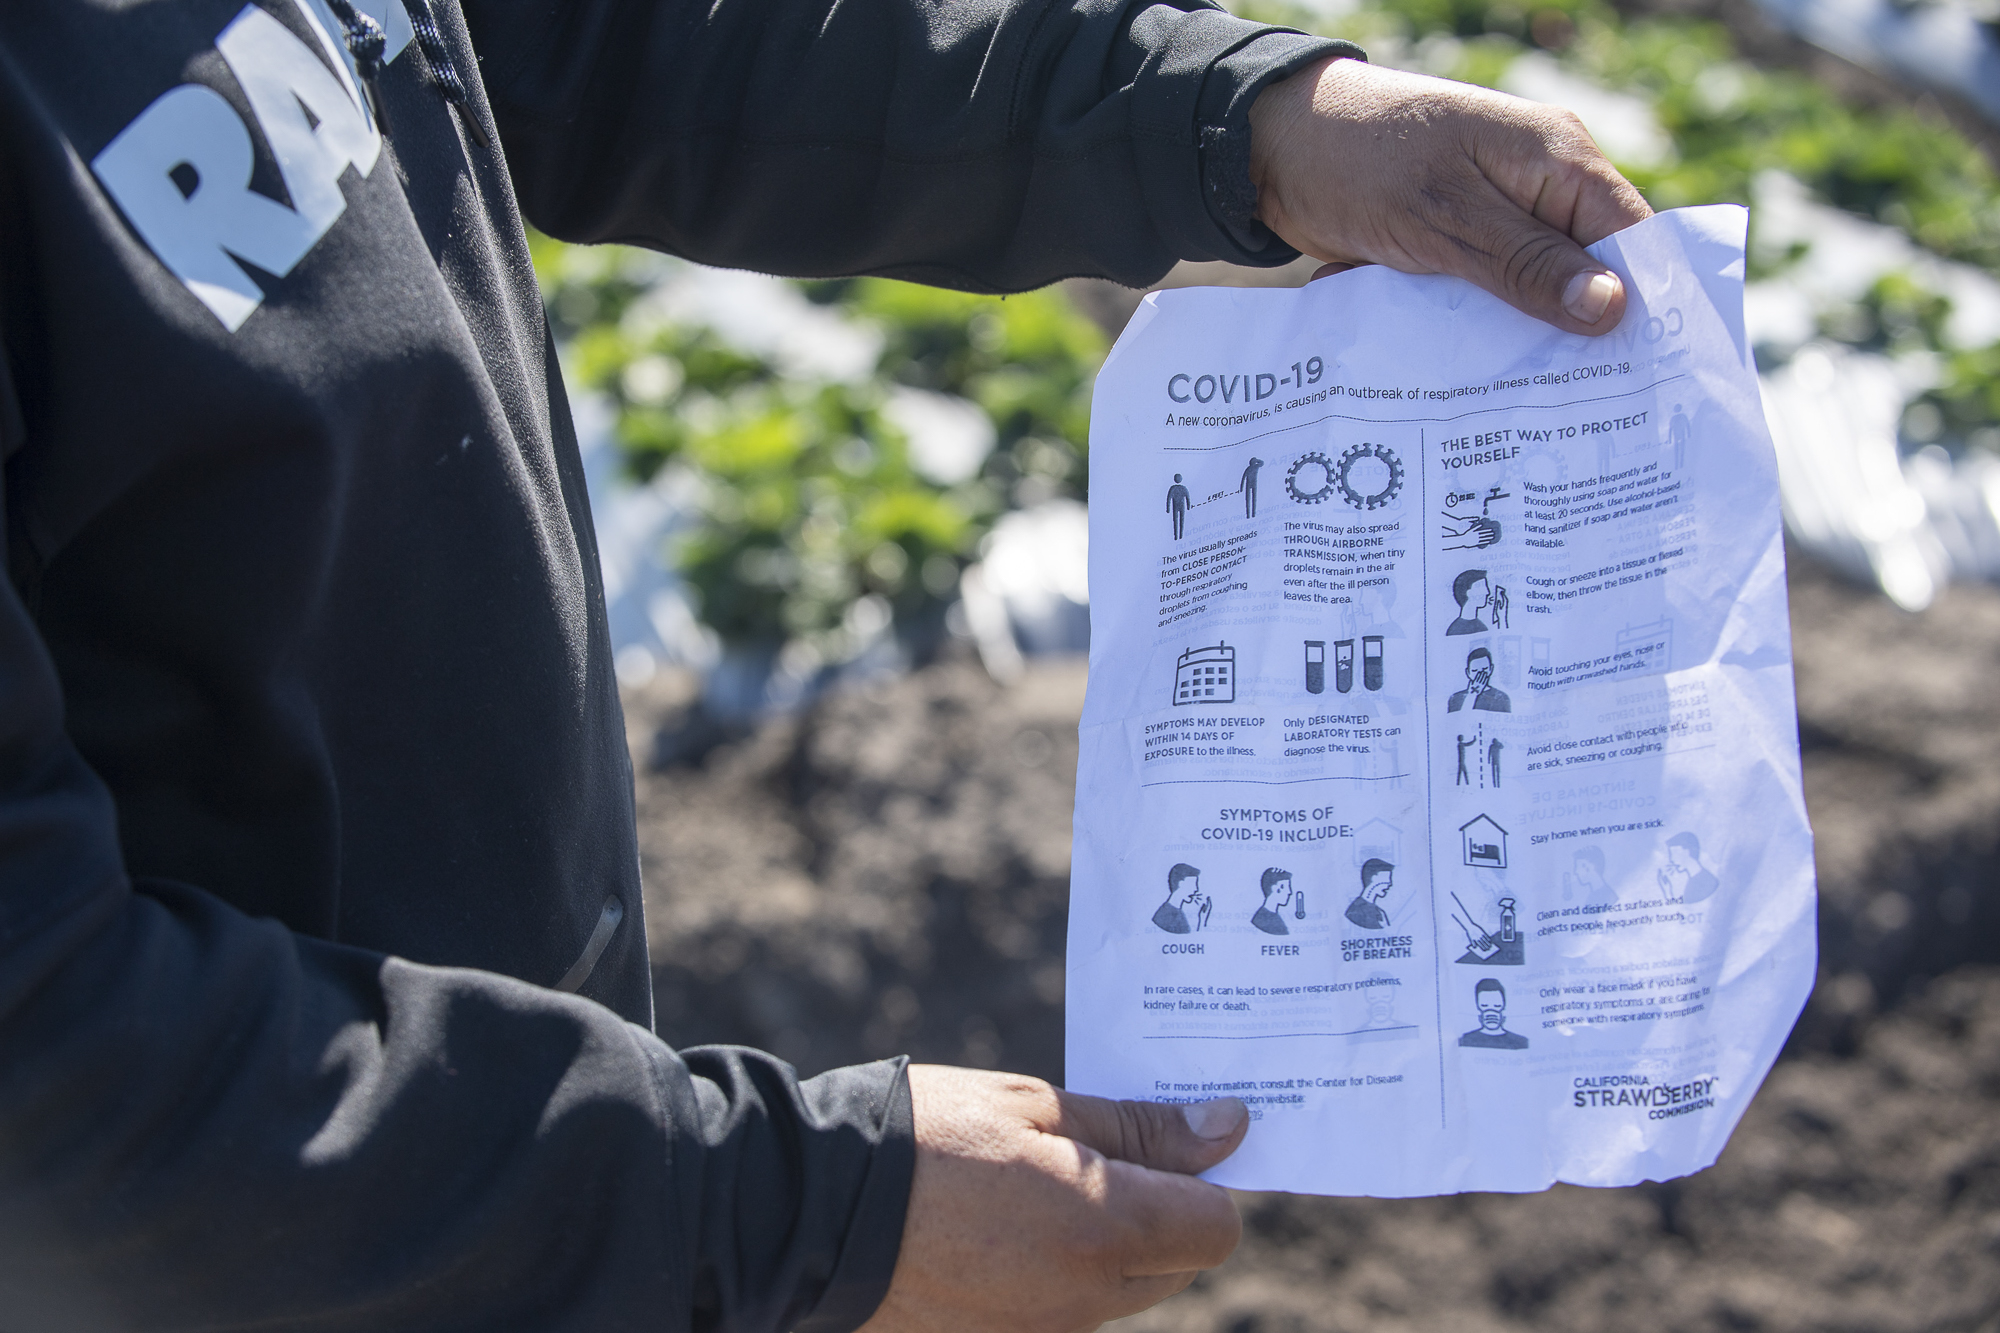 A Norcal Harvesting fieldworker shows a list of safety measures that according to the employee are being implemented in order to combat the COVID-19 pandemic. March 31, 2020. Photo by David Rodriguez, The Salinas Californian